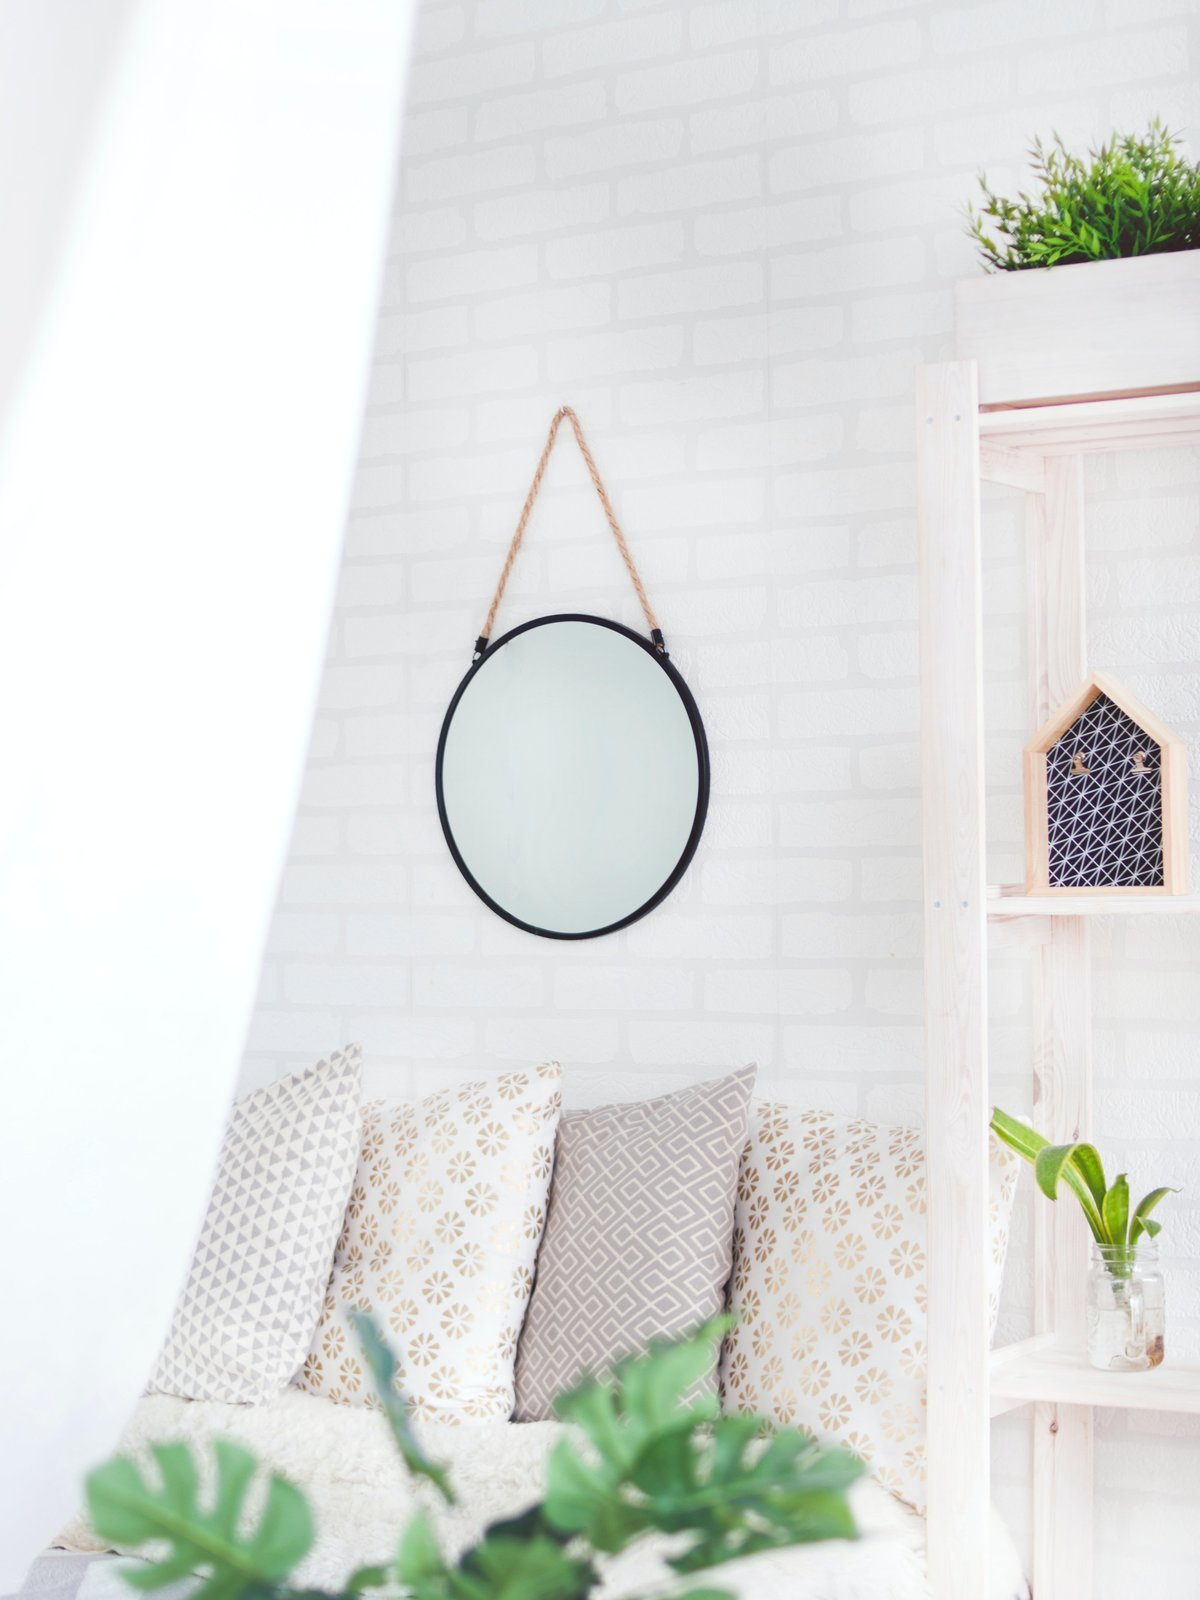 round-black-framed-mirror-on-the-wall-905198